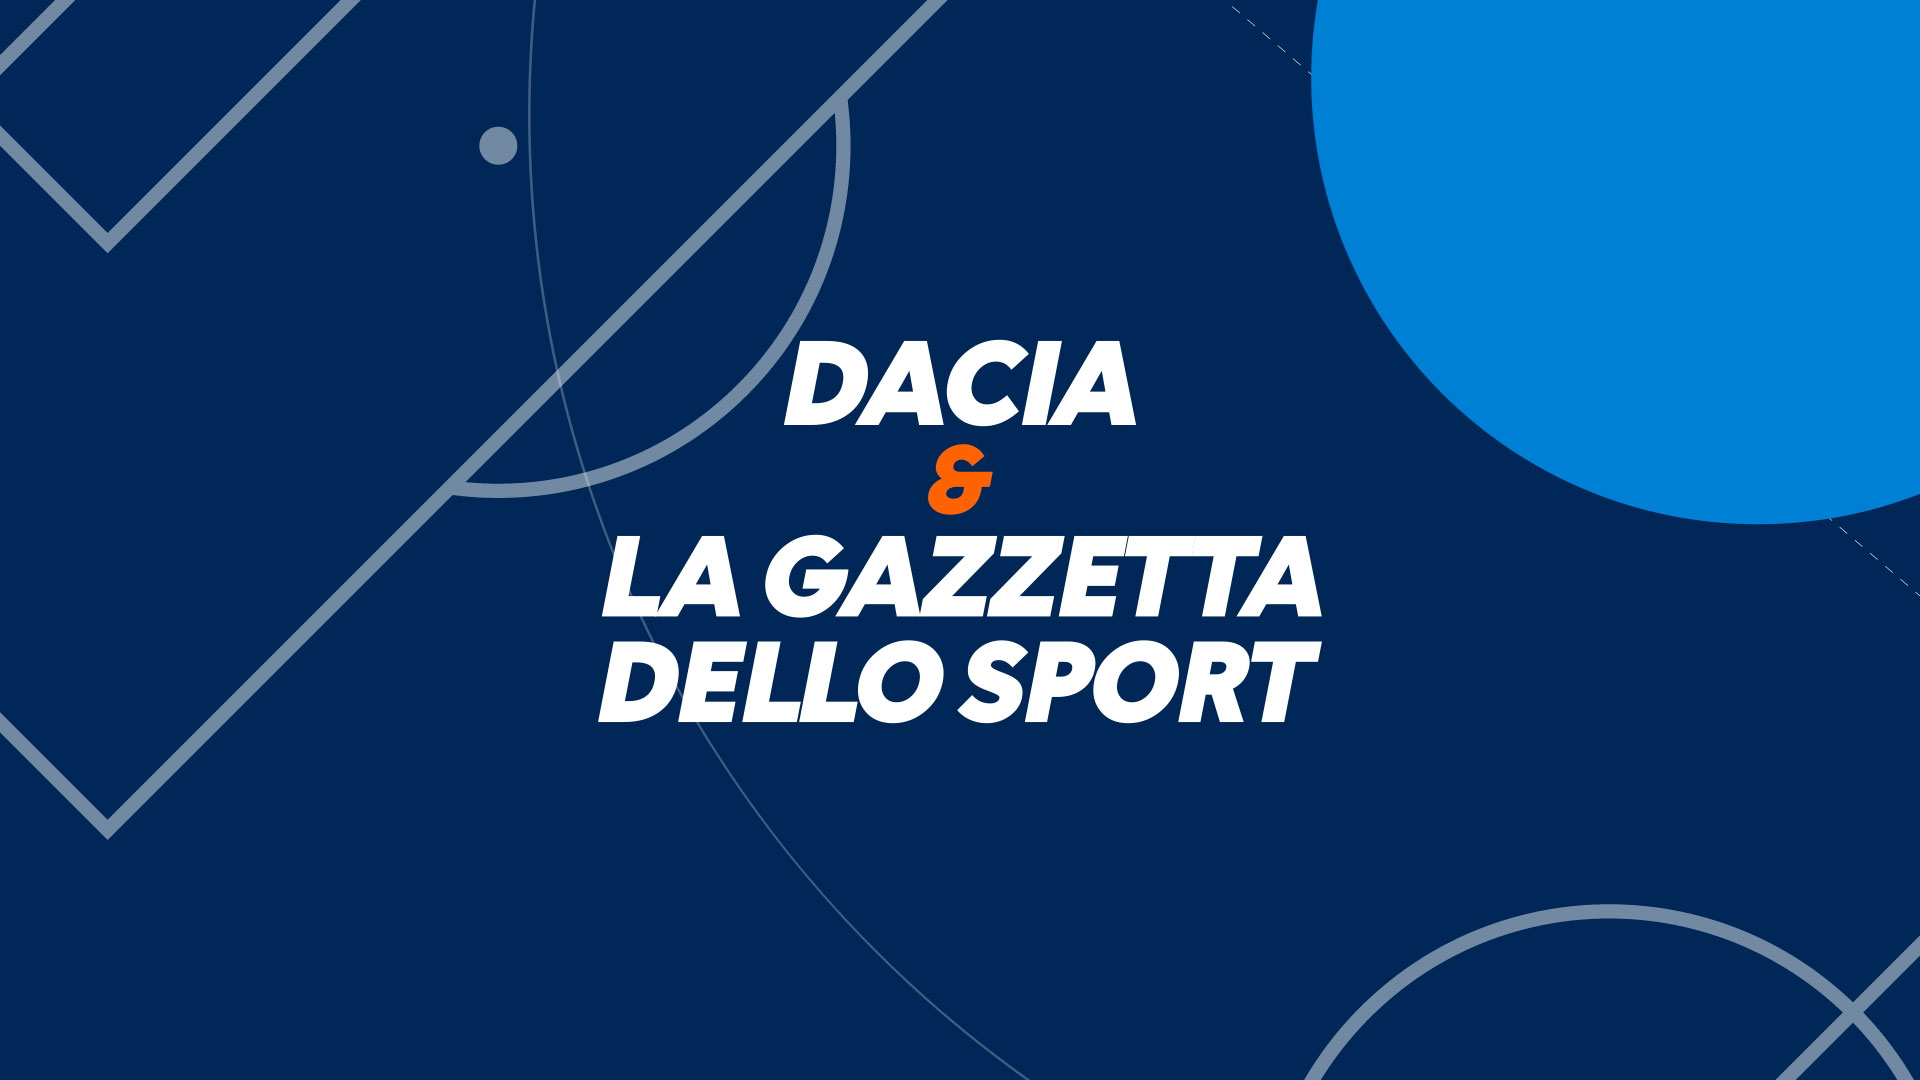 Dacia - Best Value Player - Motion Graphics - Web Compaign